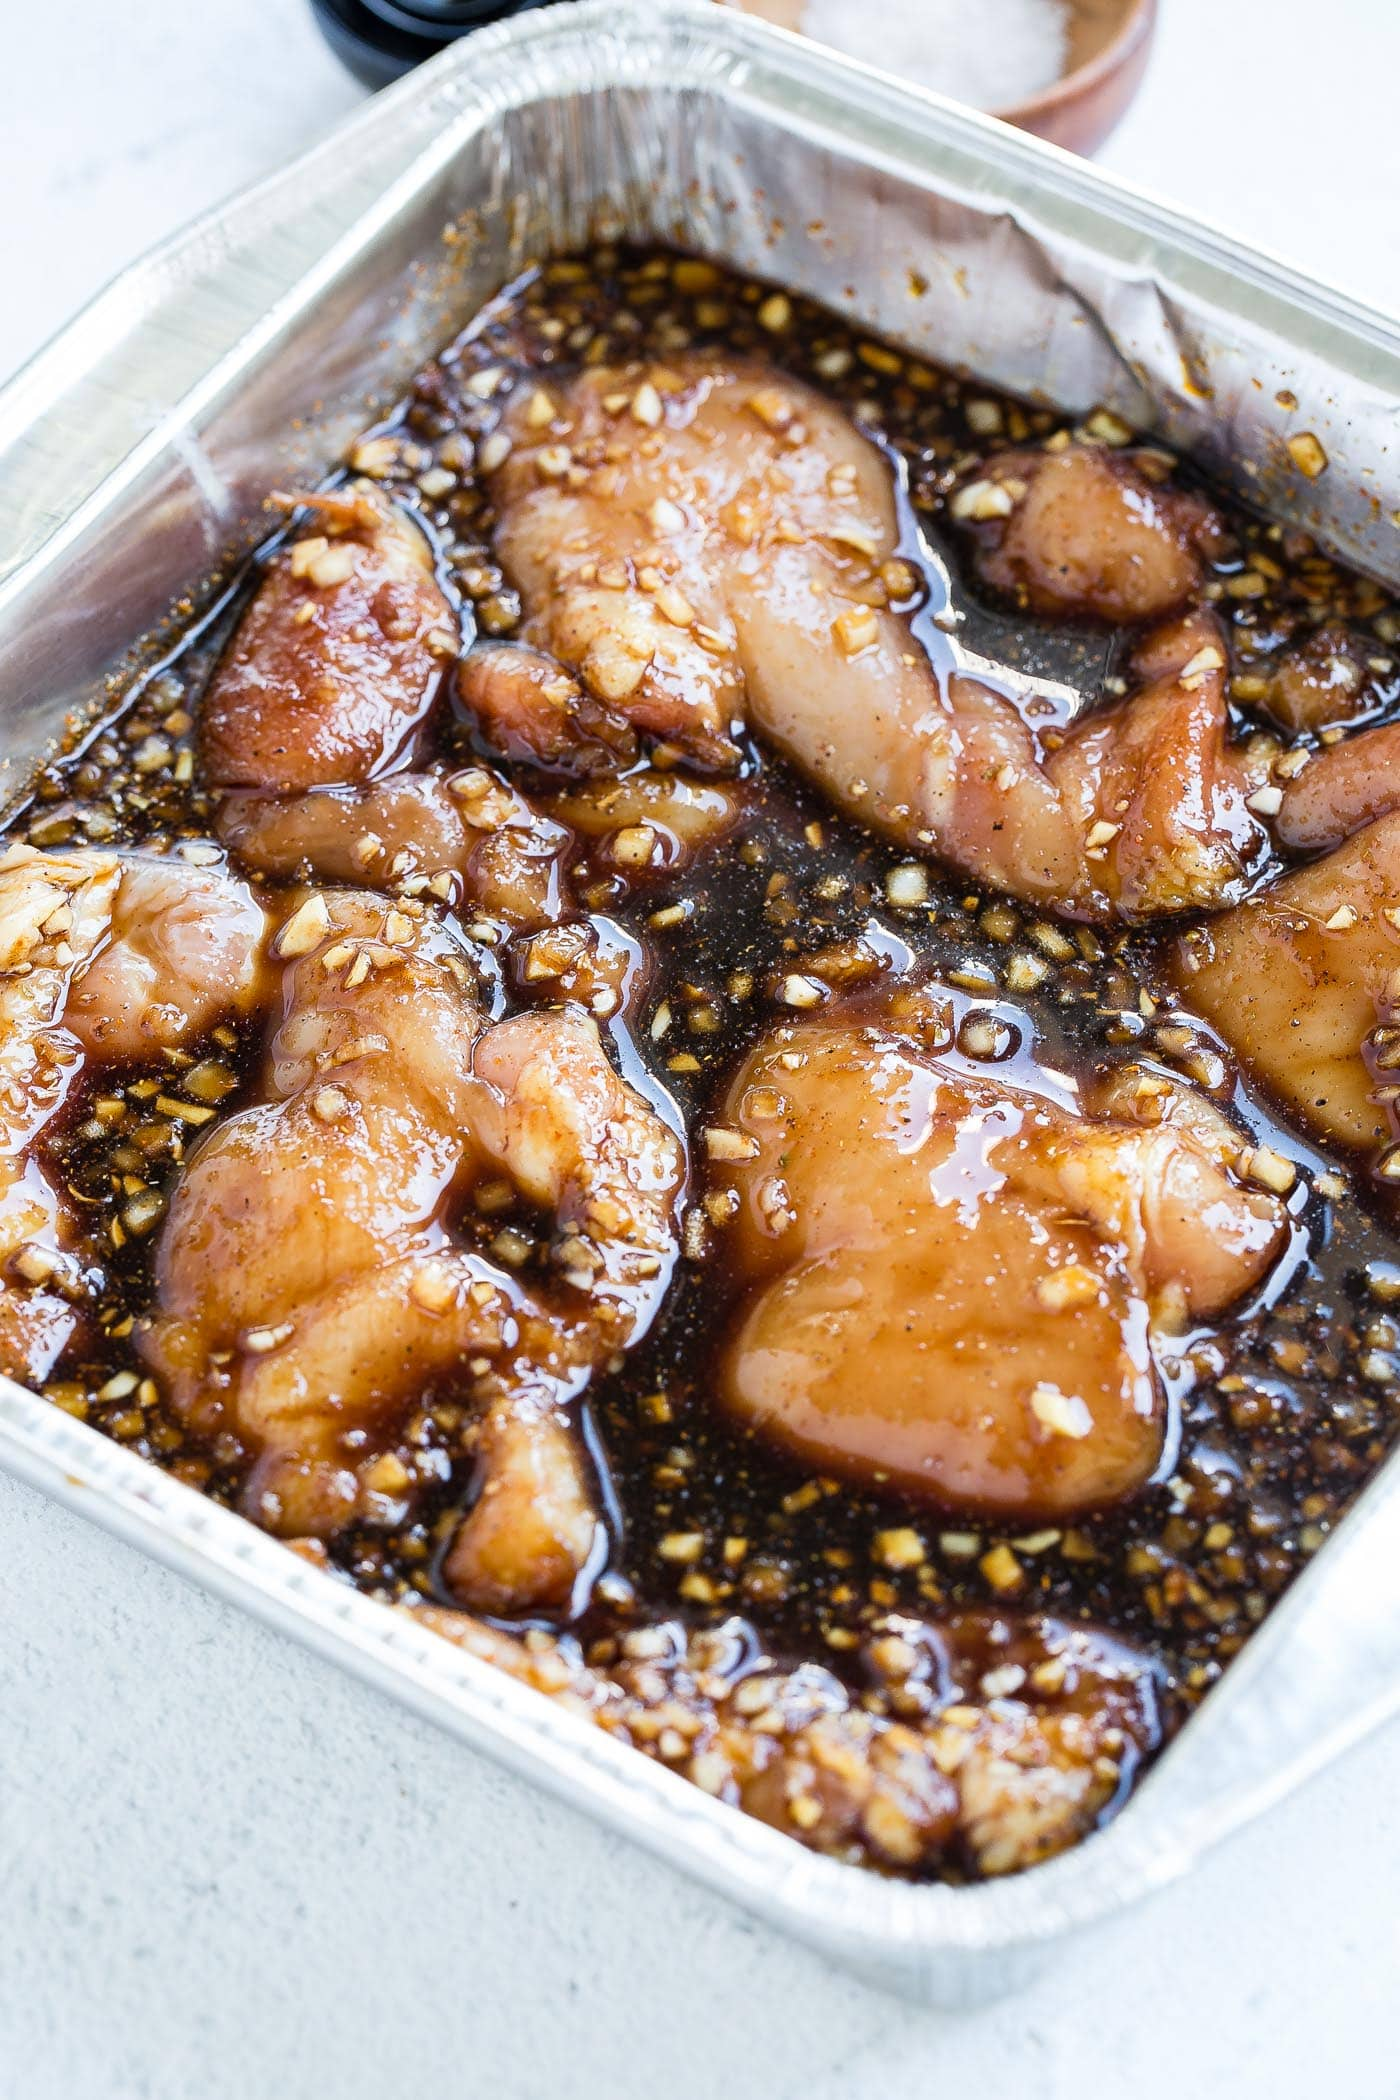 A large dish with chicken thighs marinating in a dark brown sauce.